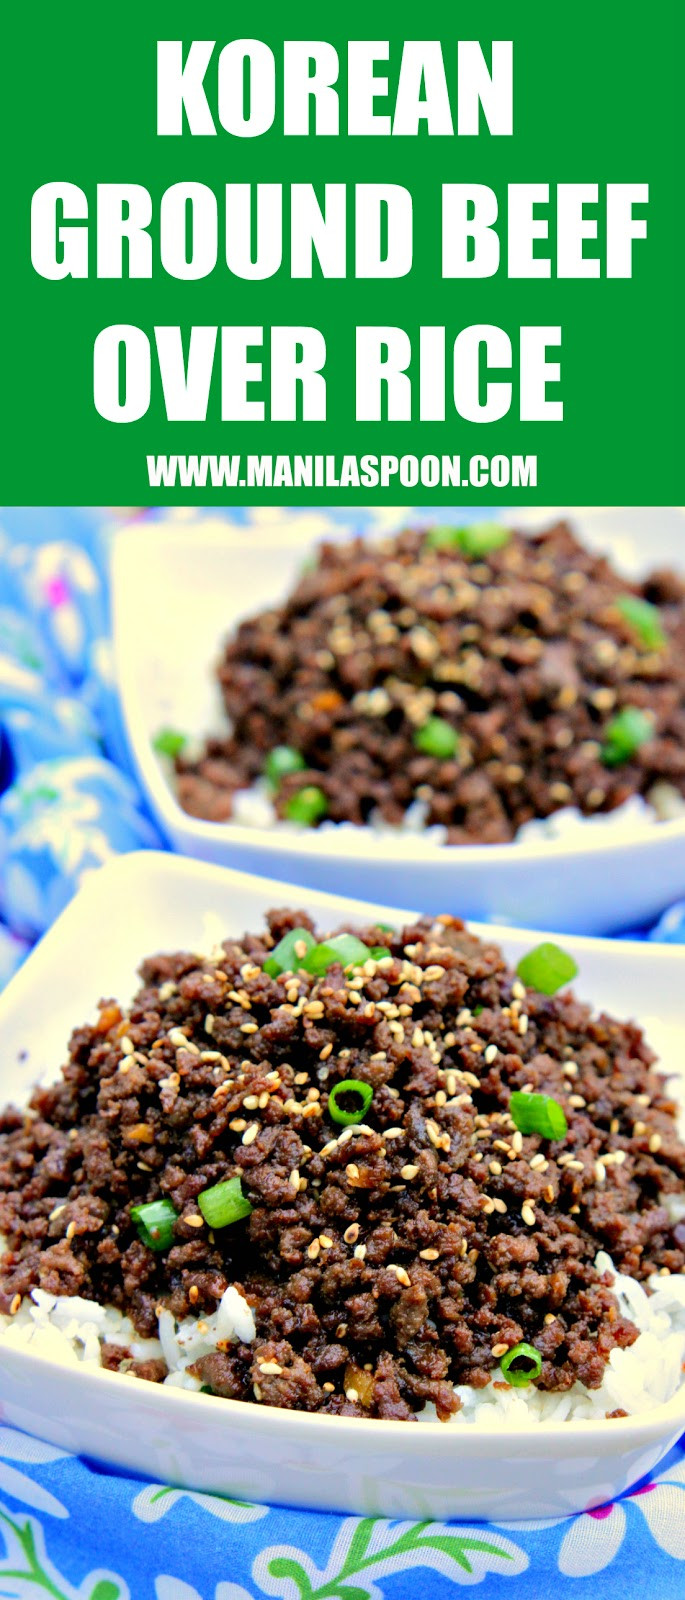 Ground Beef Rice  Korean Ground Beef over Rice Manila Spoon